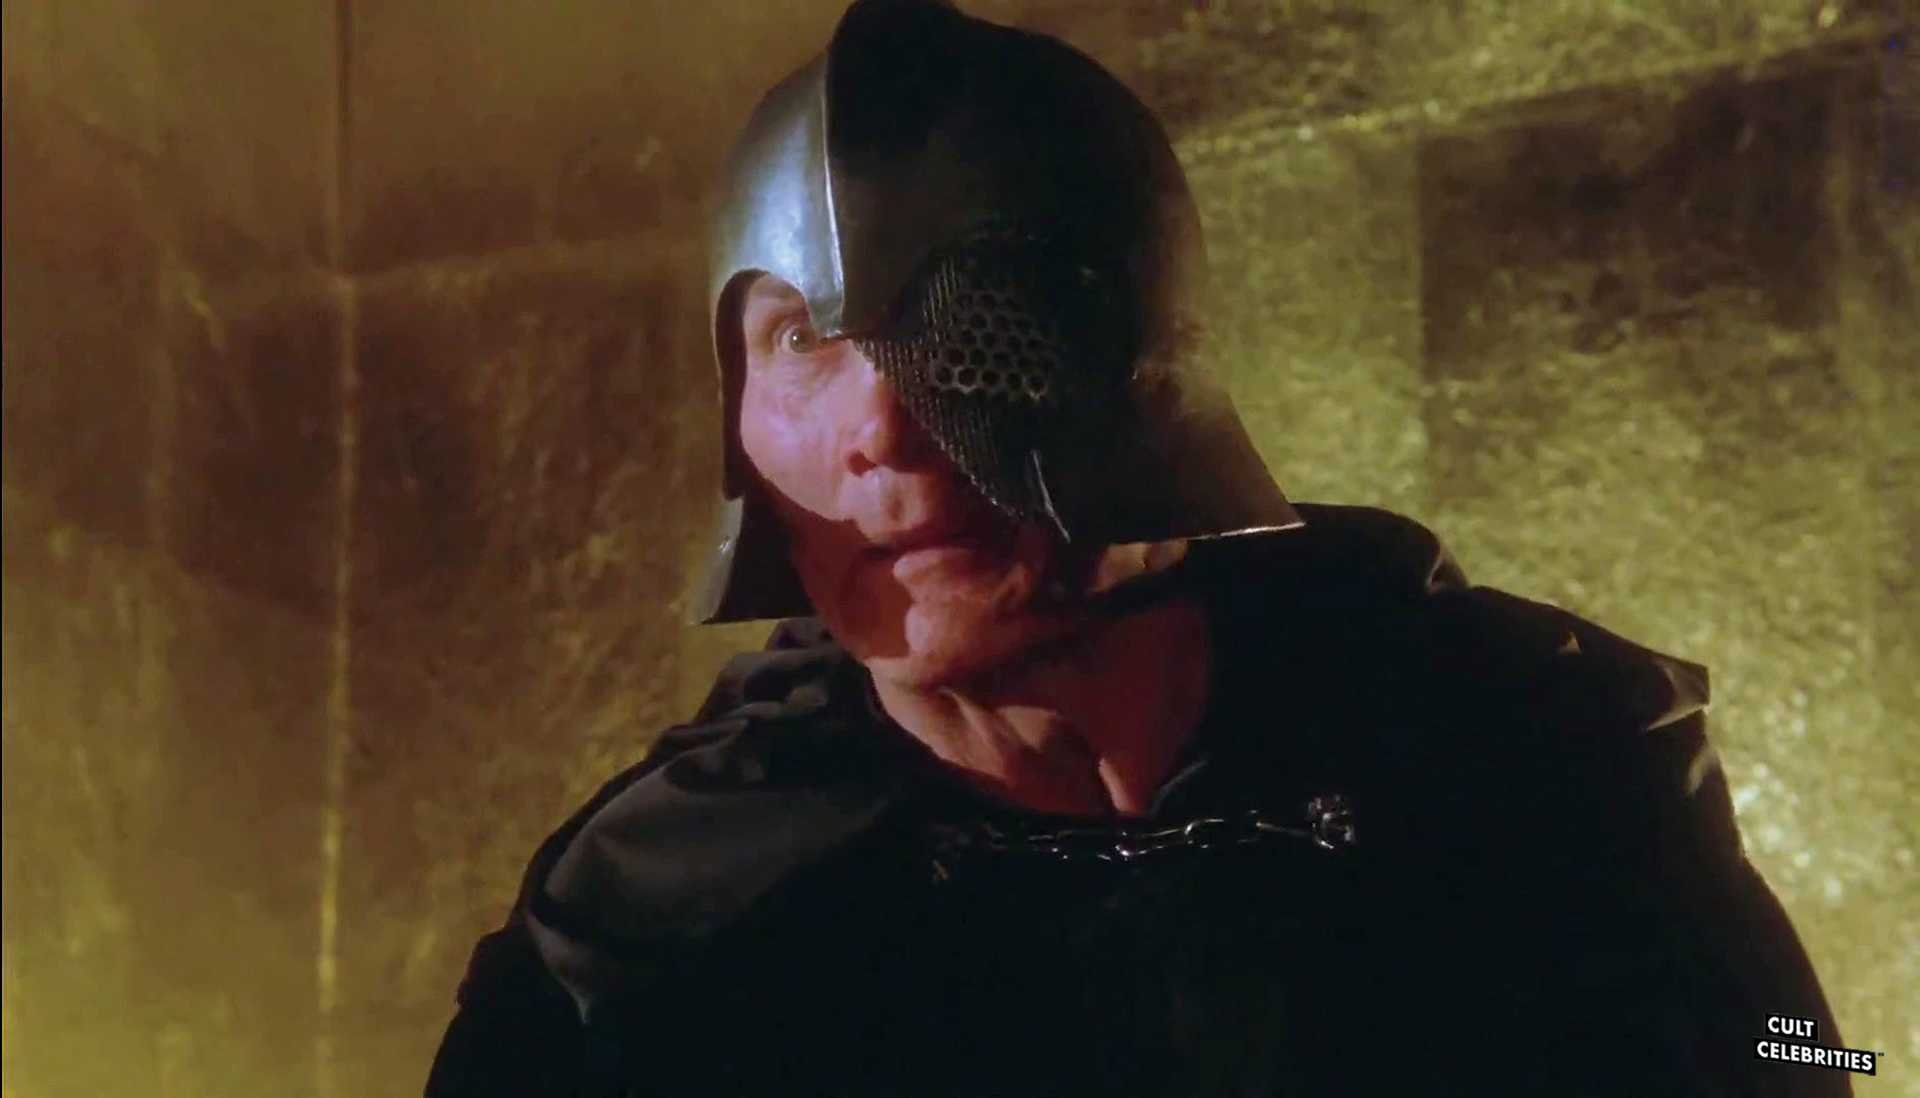 Jack Palance in Hawk the Slayer (1980)